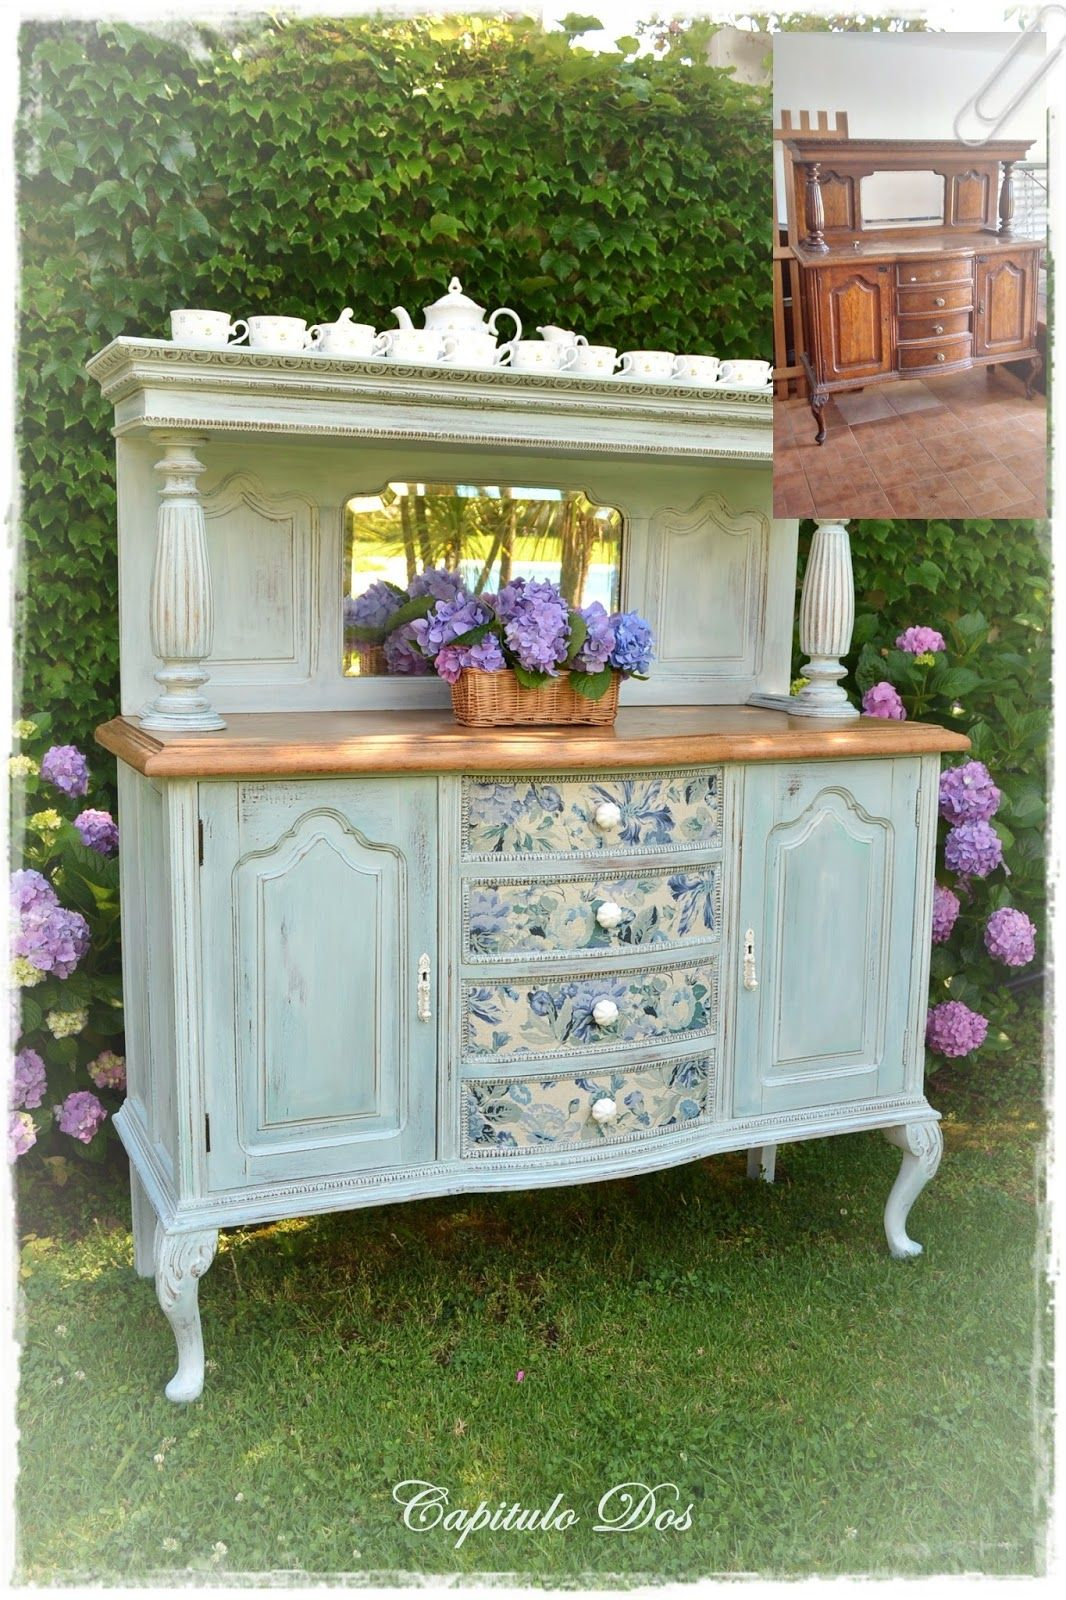 Pin by Victoria O\'Kane on Craft Ideas | Pinterest | Paint furniture ...